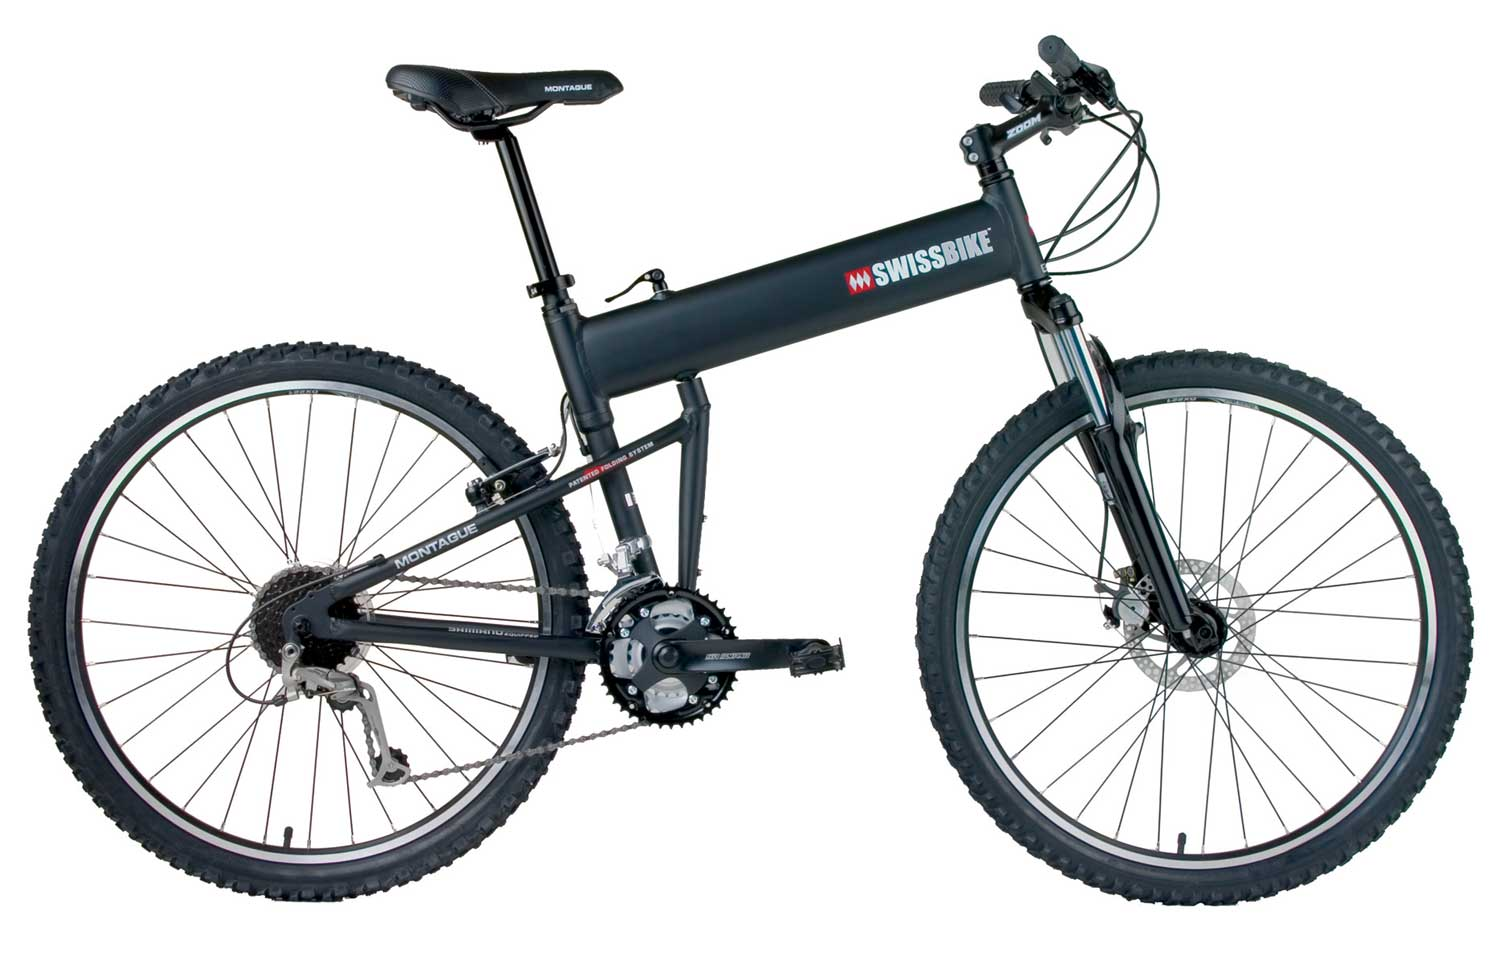 2009 LX Mountain Folding Bike